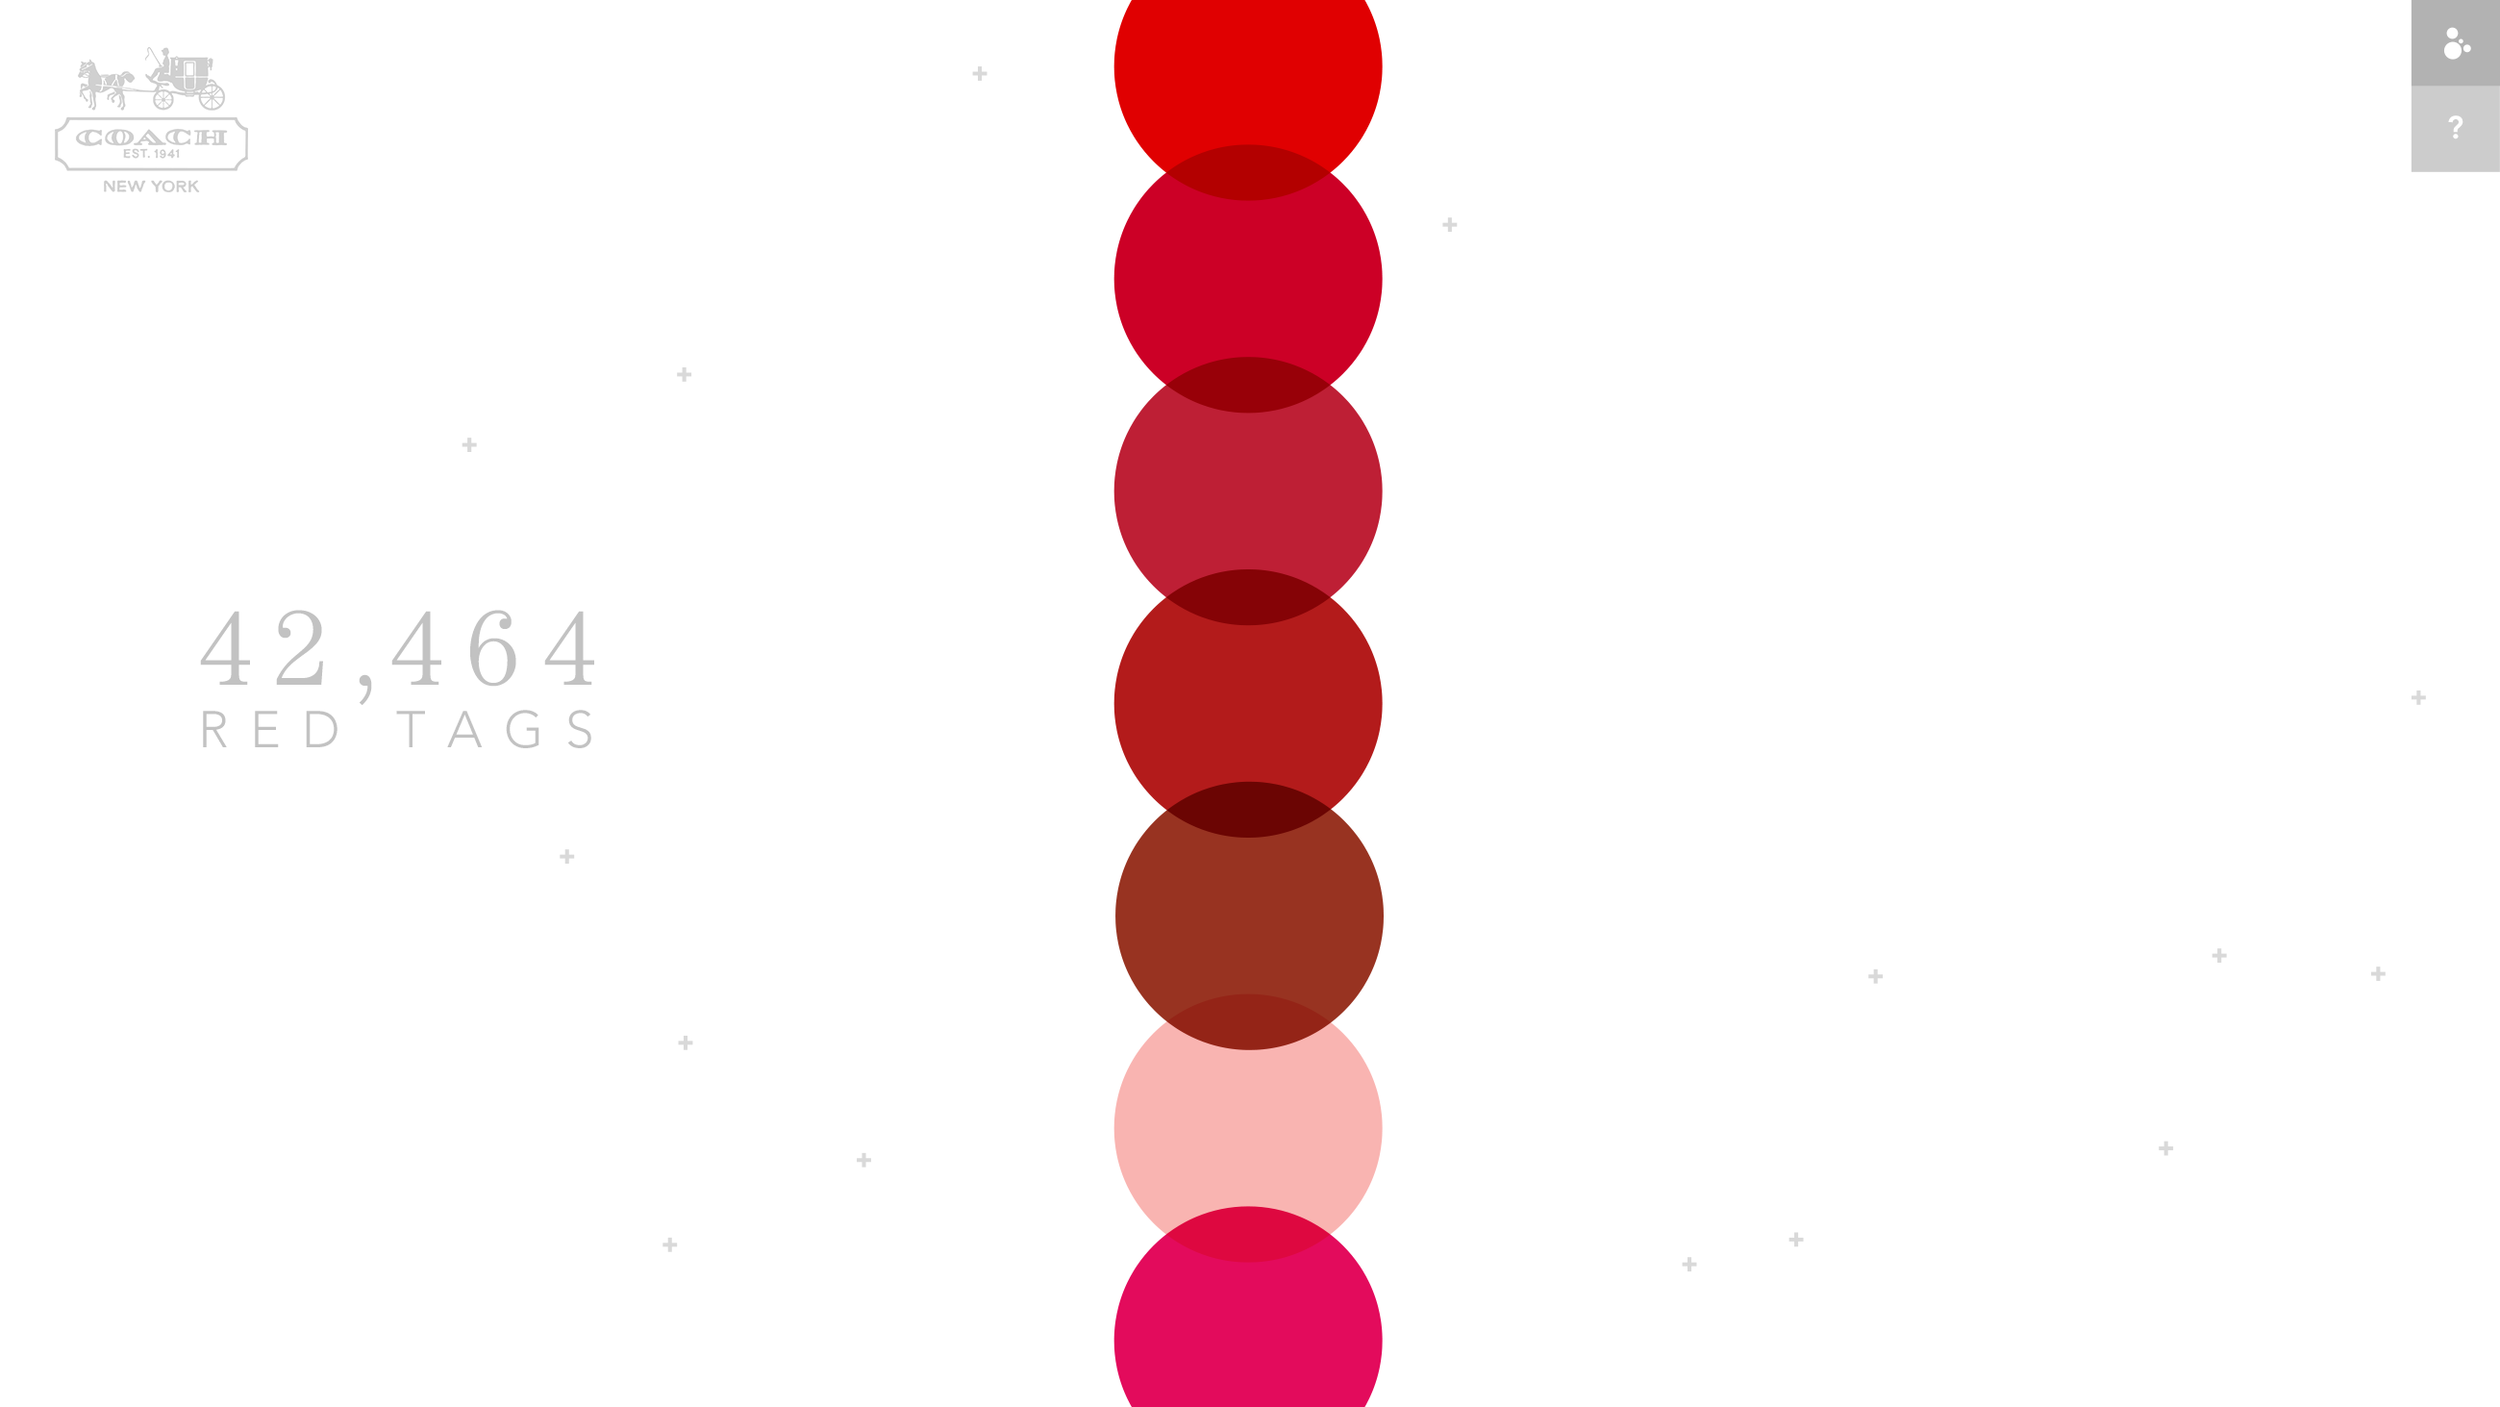 colortag-red@2x.png